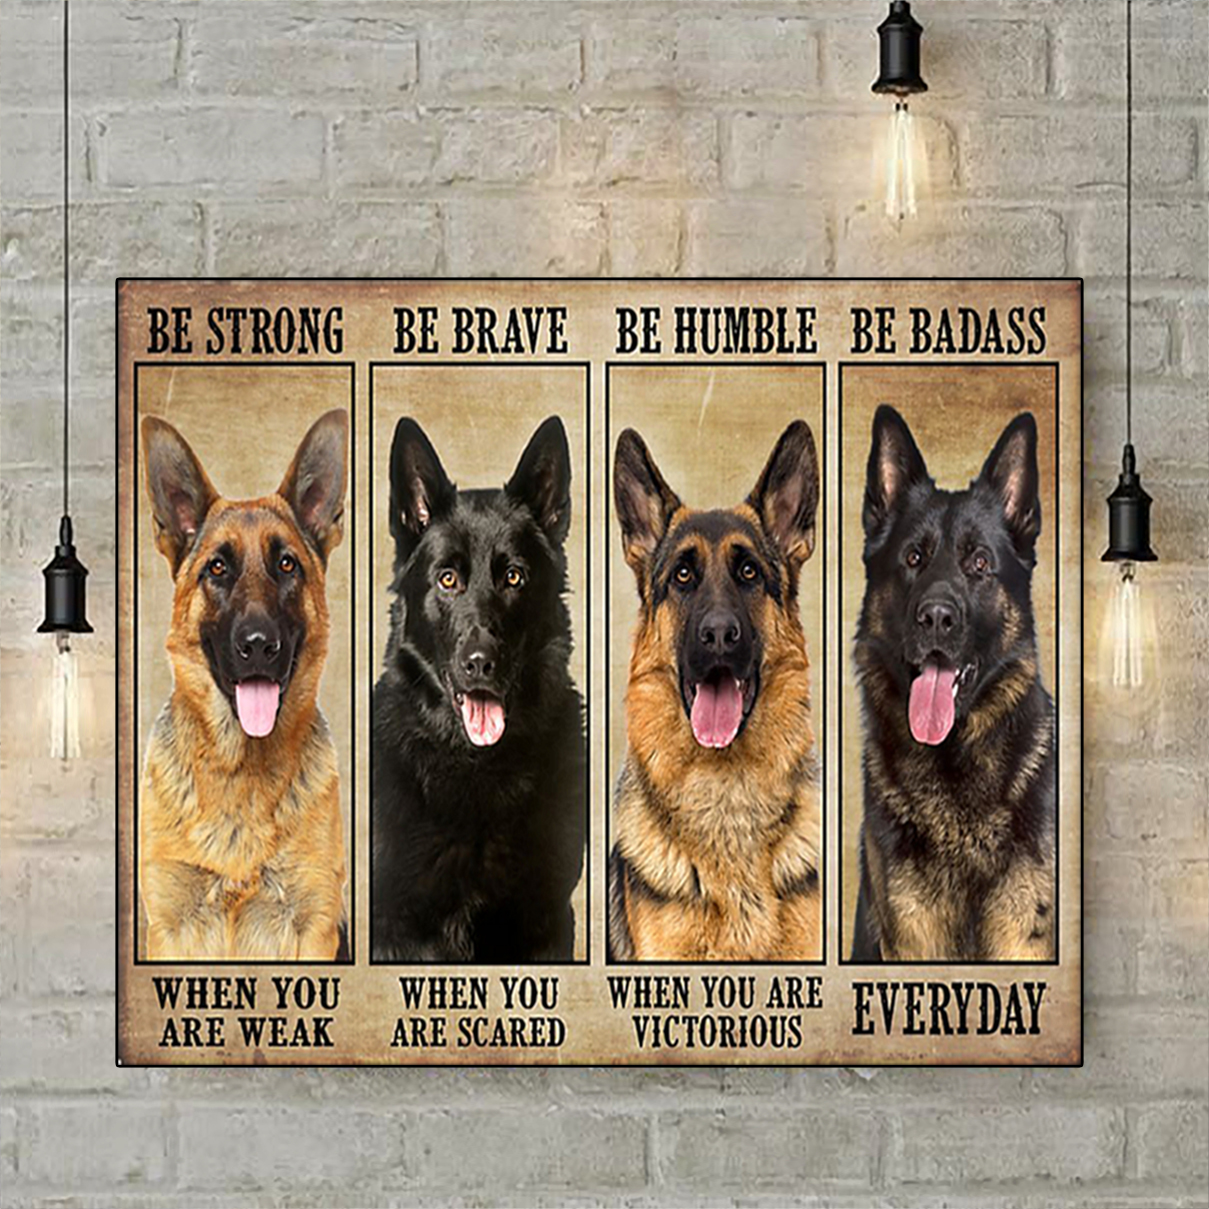 German shepherd be strong be brave be humble be badass poster A1